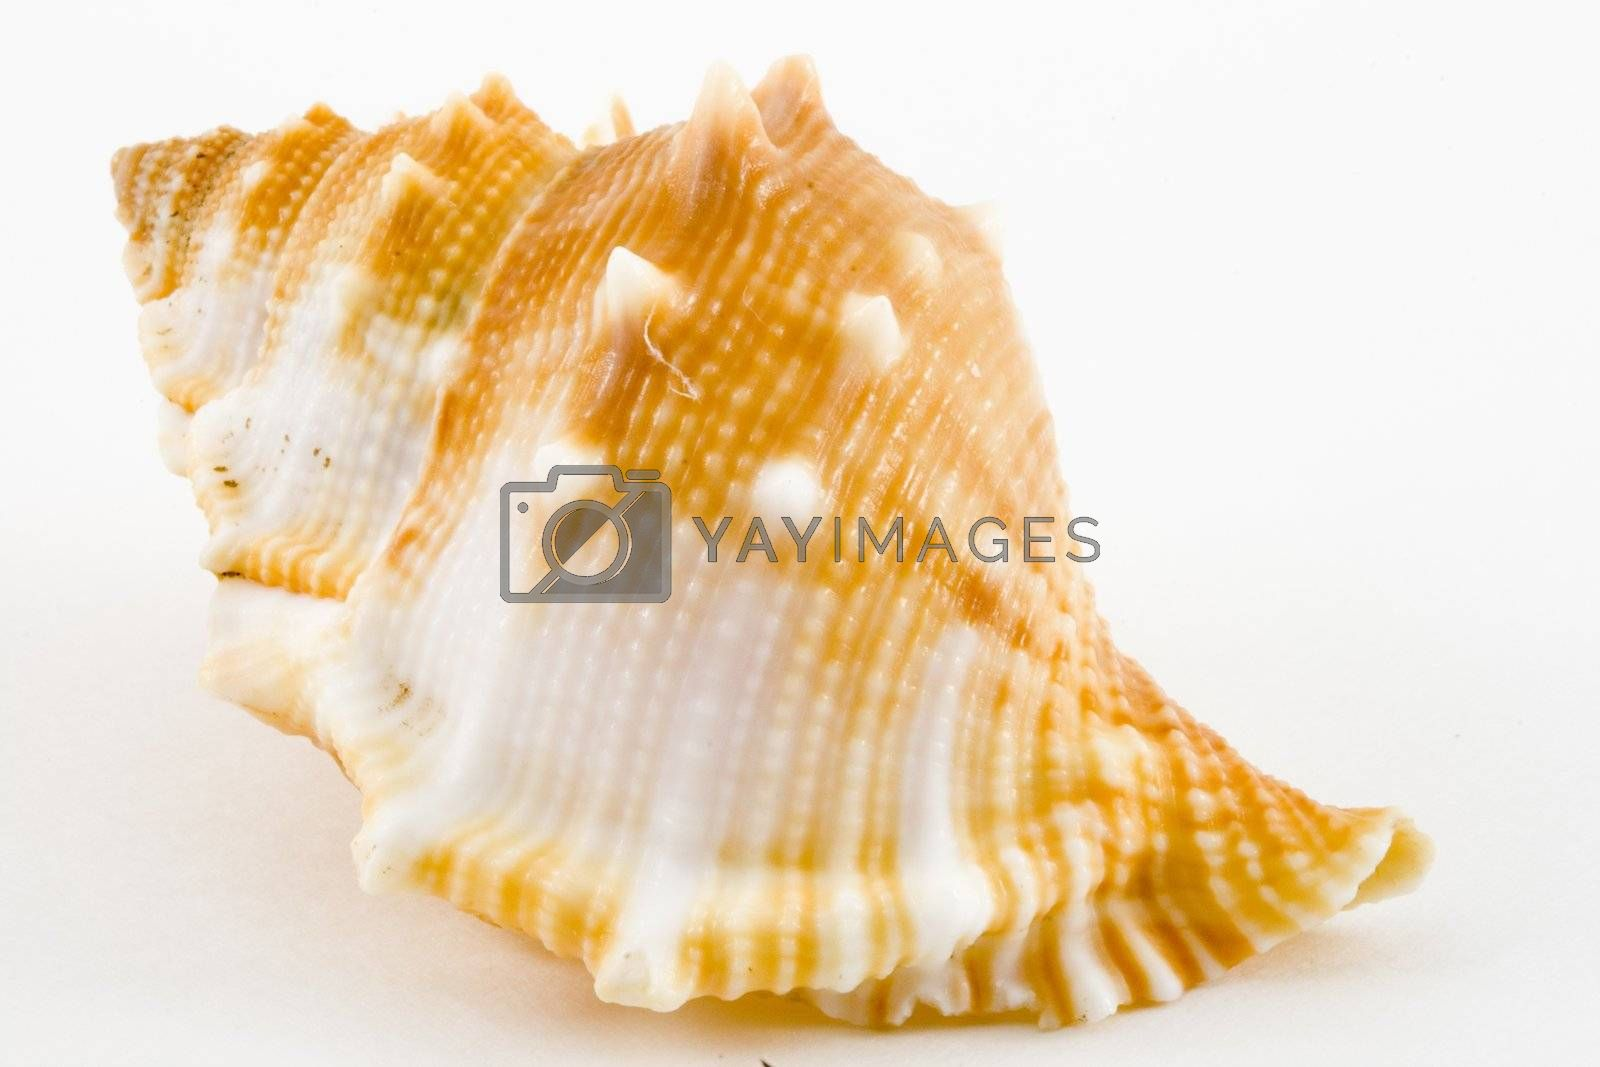 detail of a conch on the white background